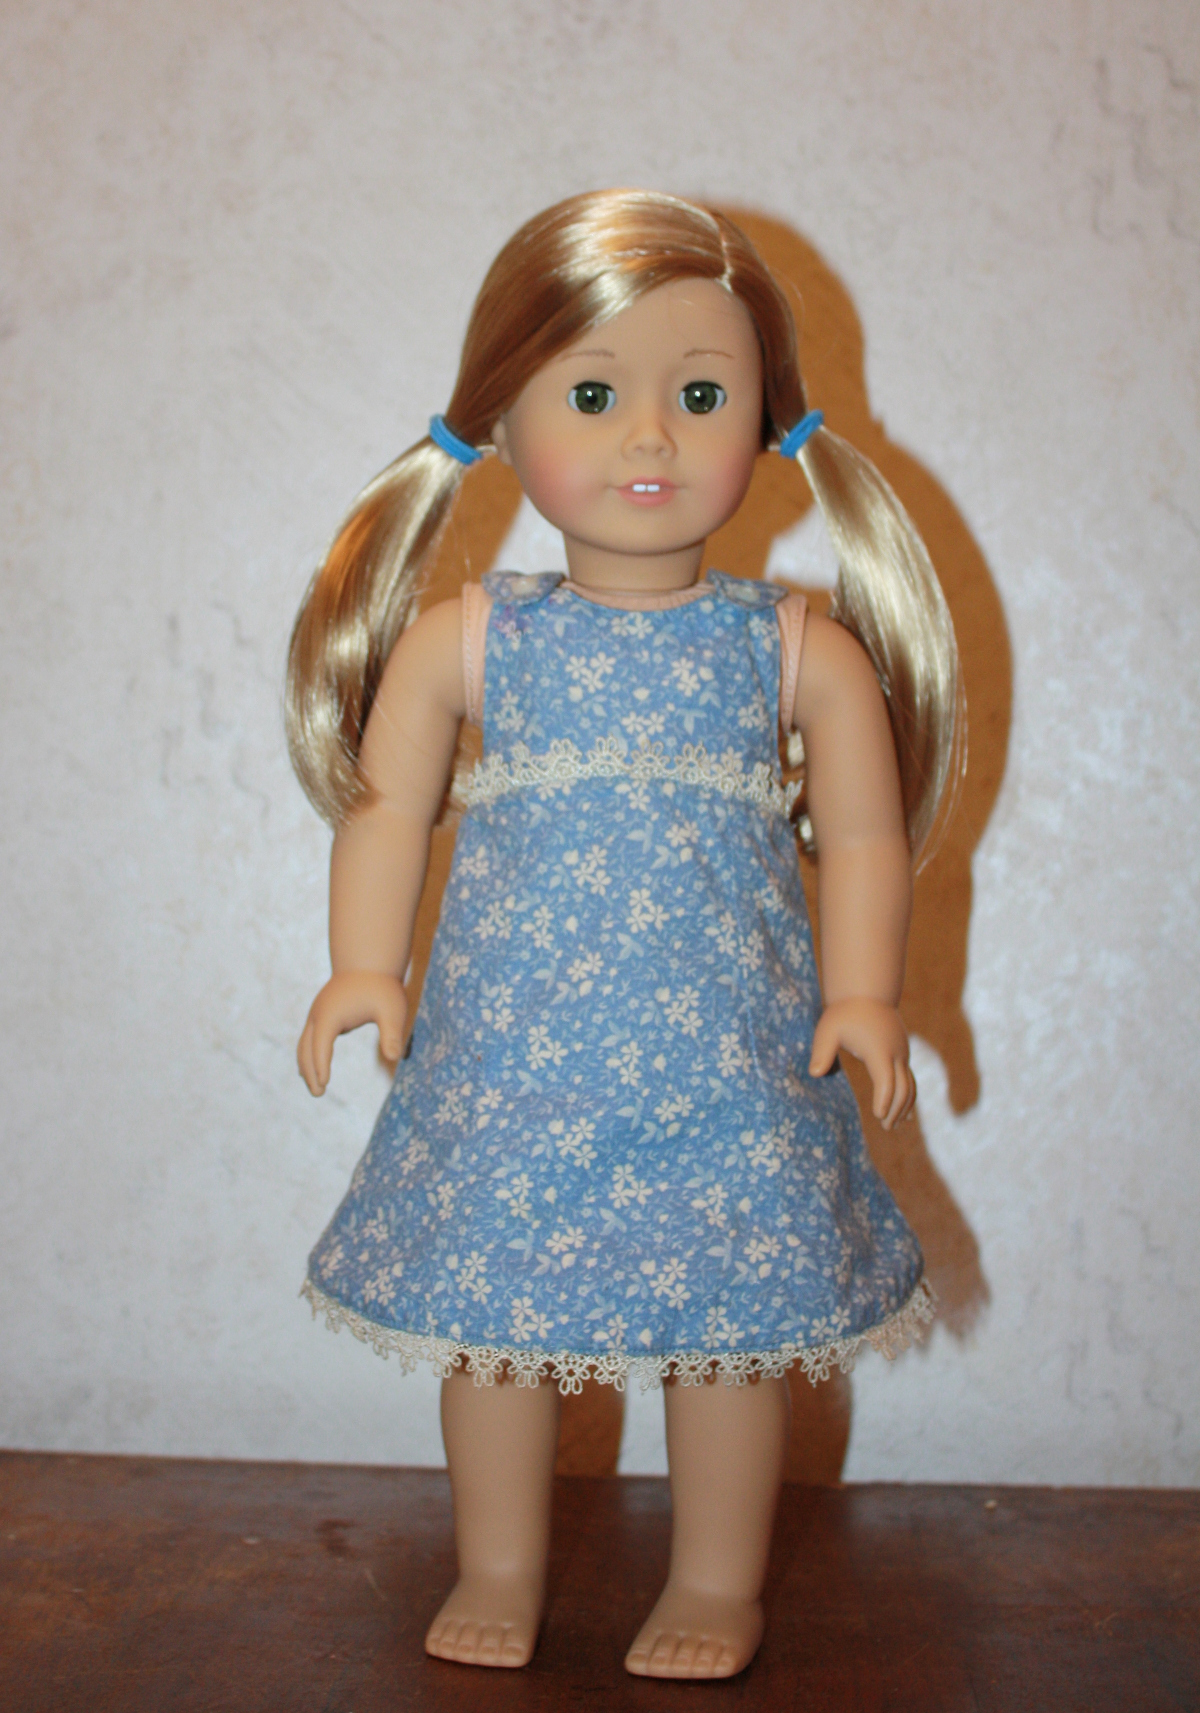 Sewing for Dolls | Blog | Oliver + S